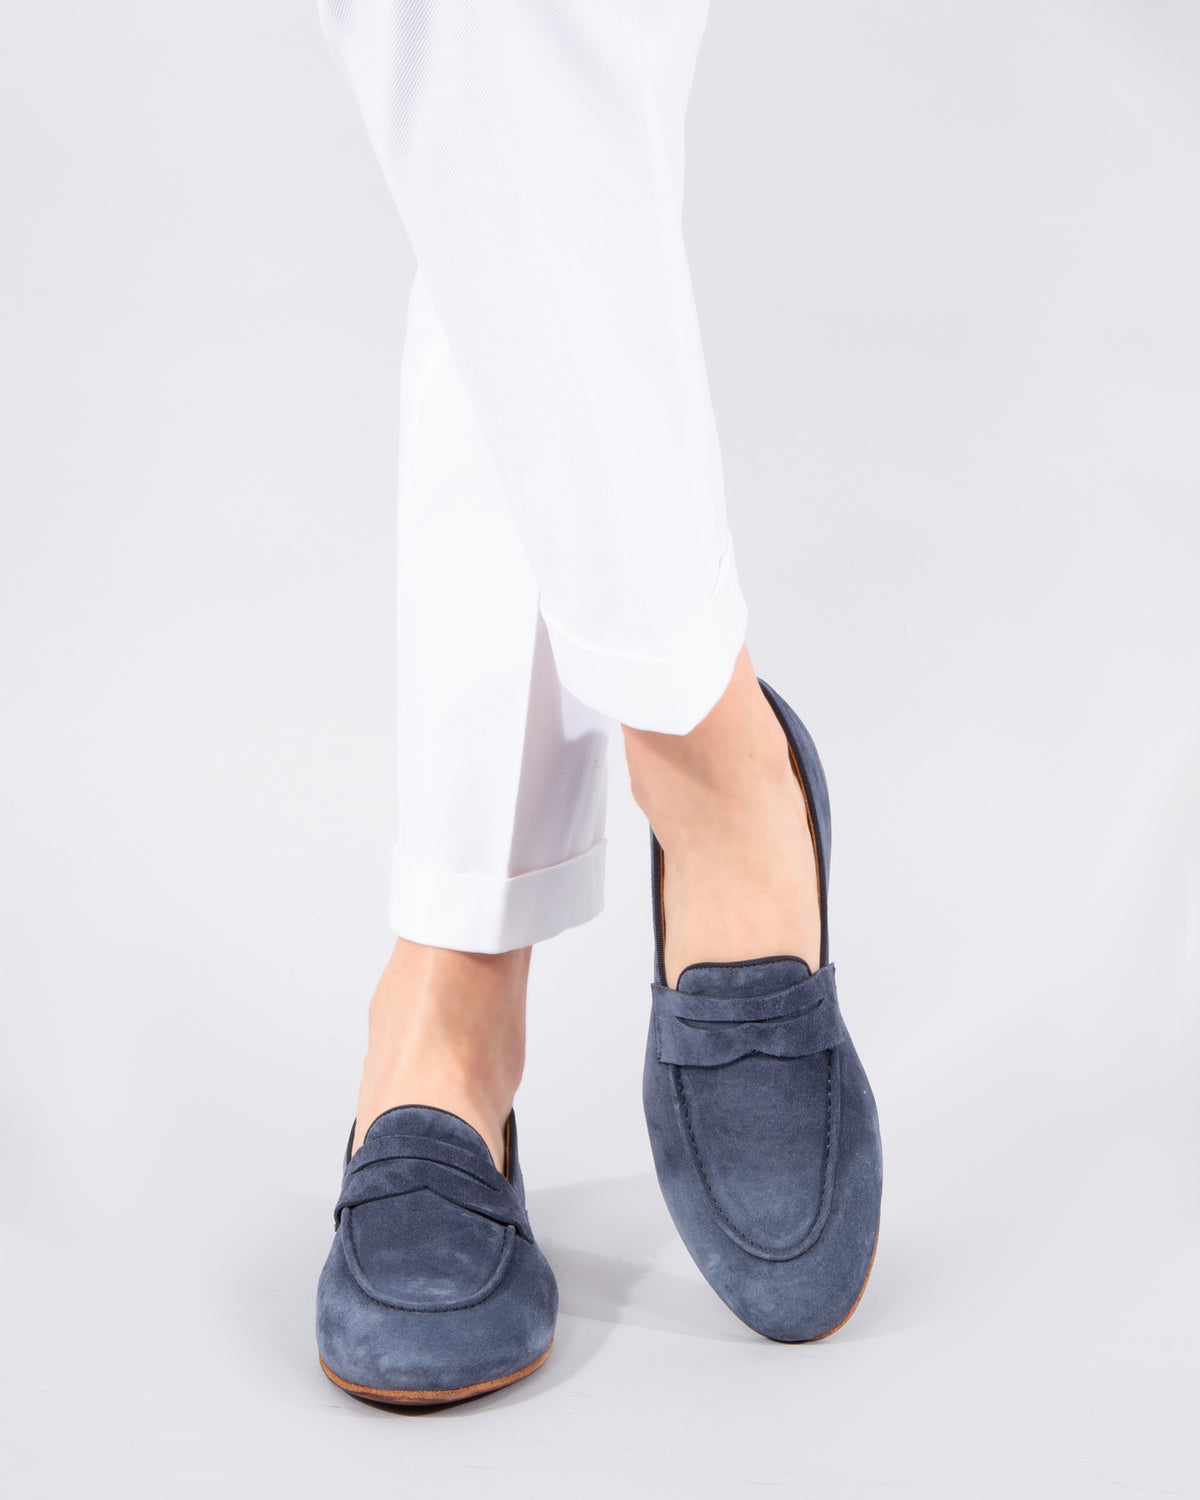 Venere' Penny Loafer